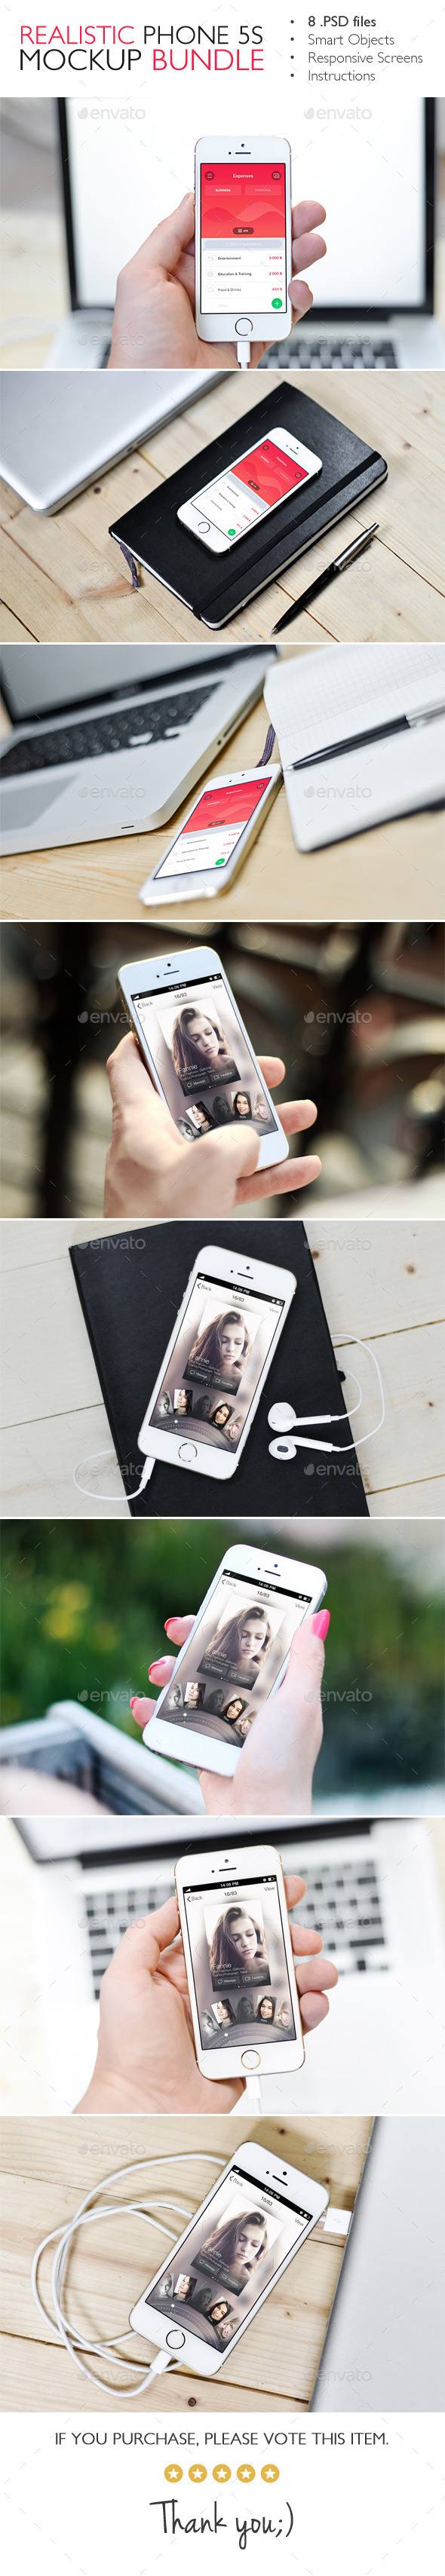 GraphicRiver Realistic Phone 5s Mockup Bundle 2 in 1 11315174